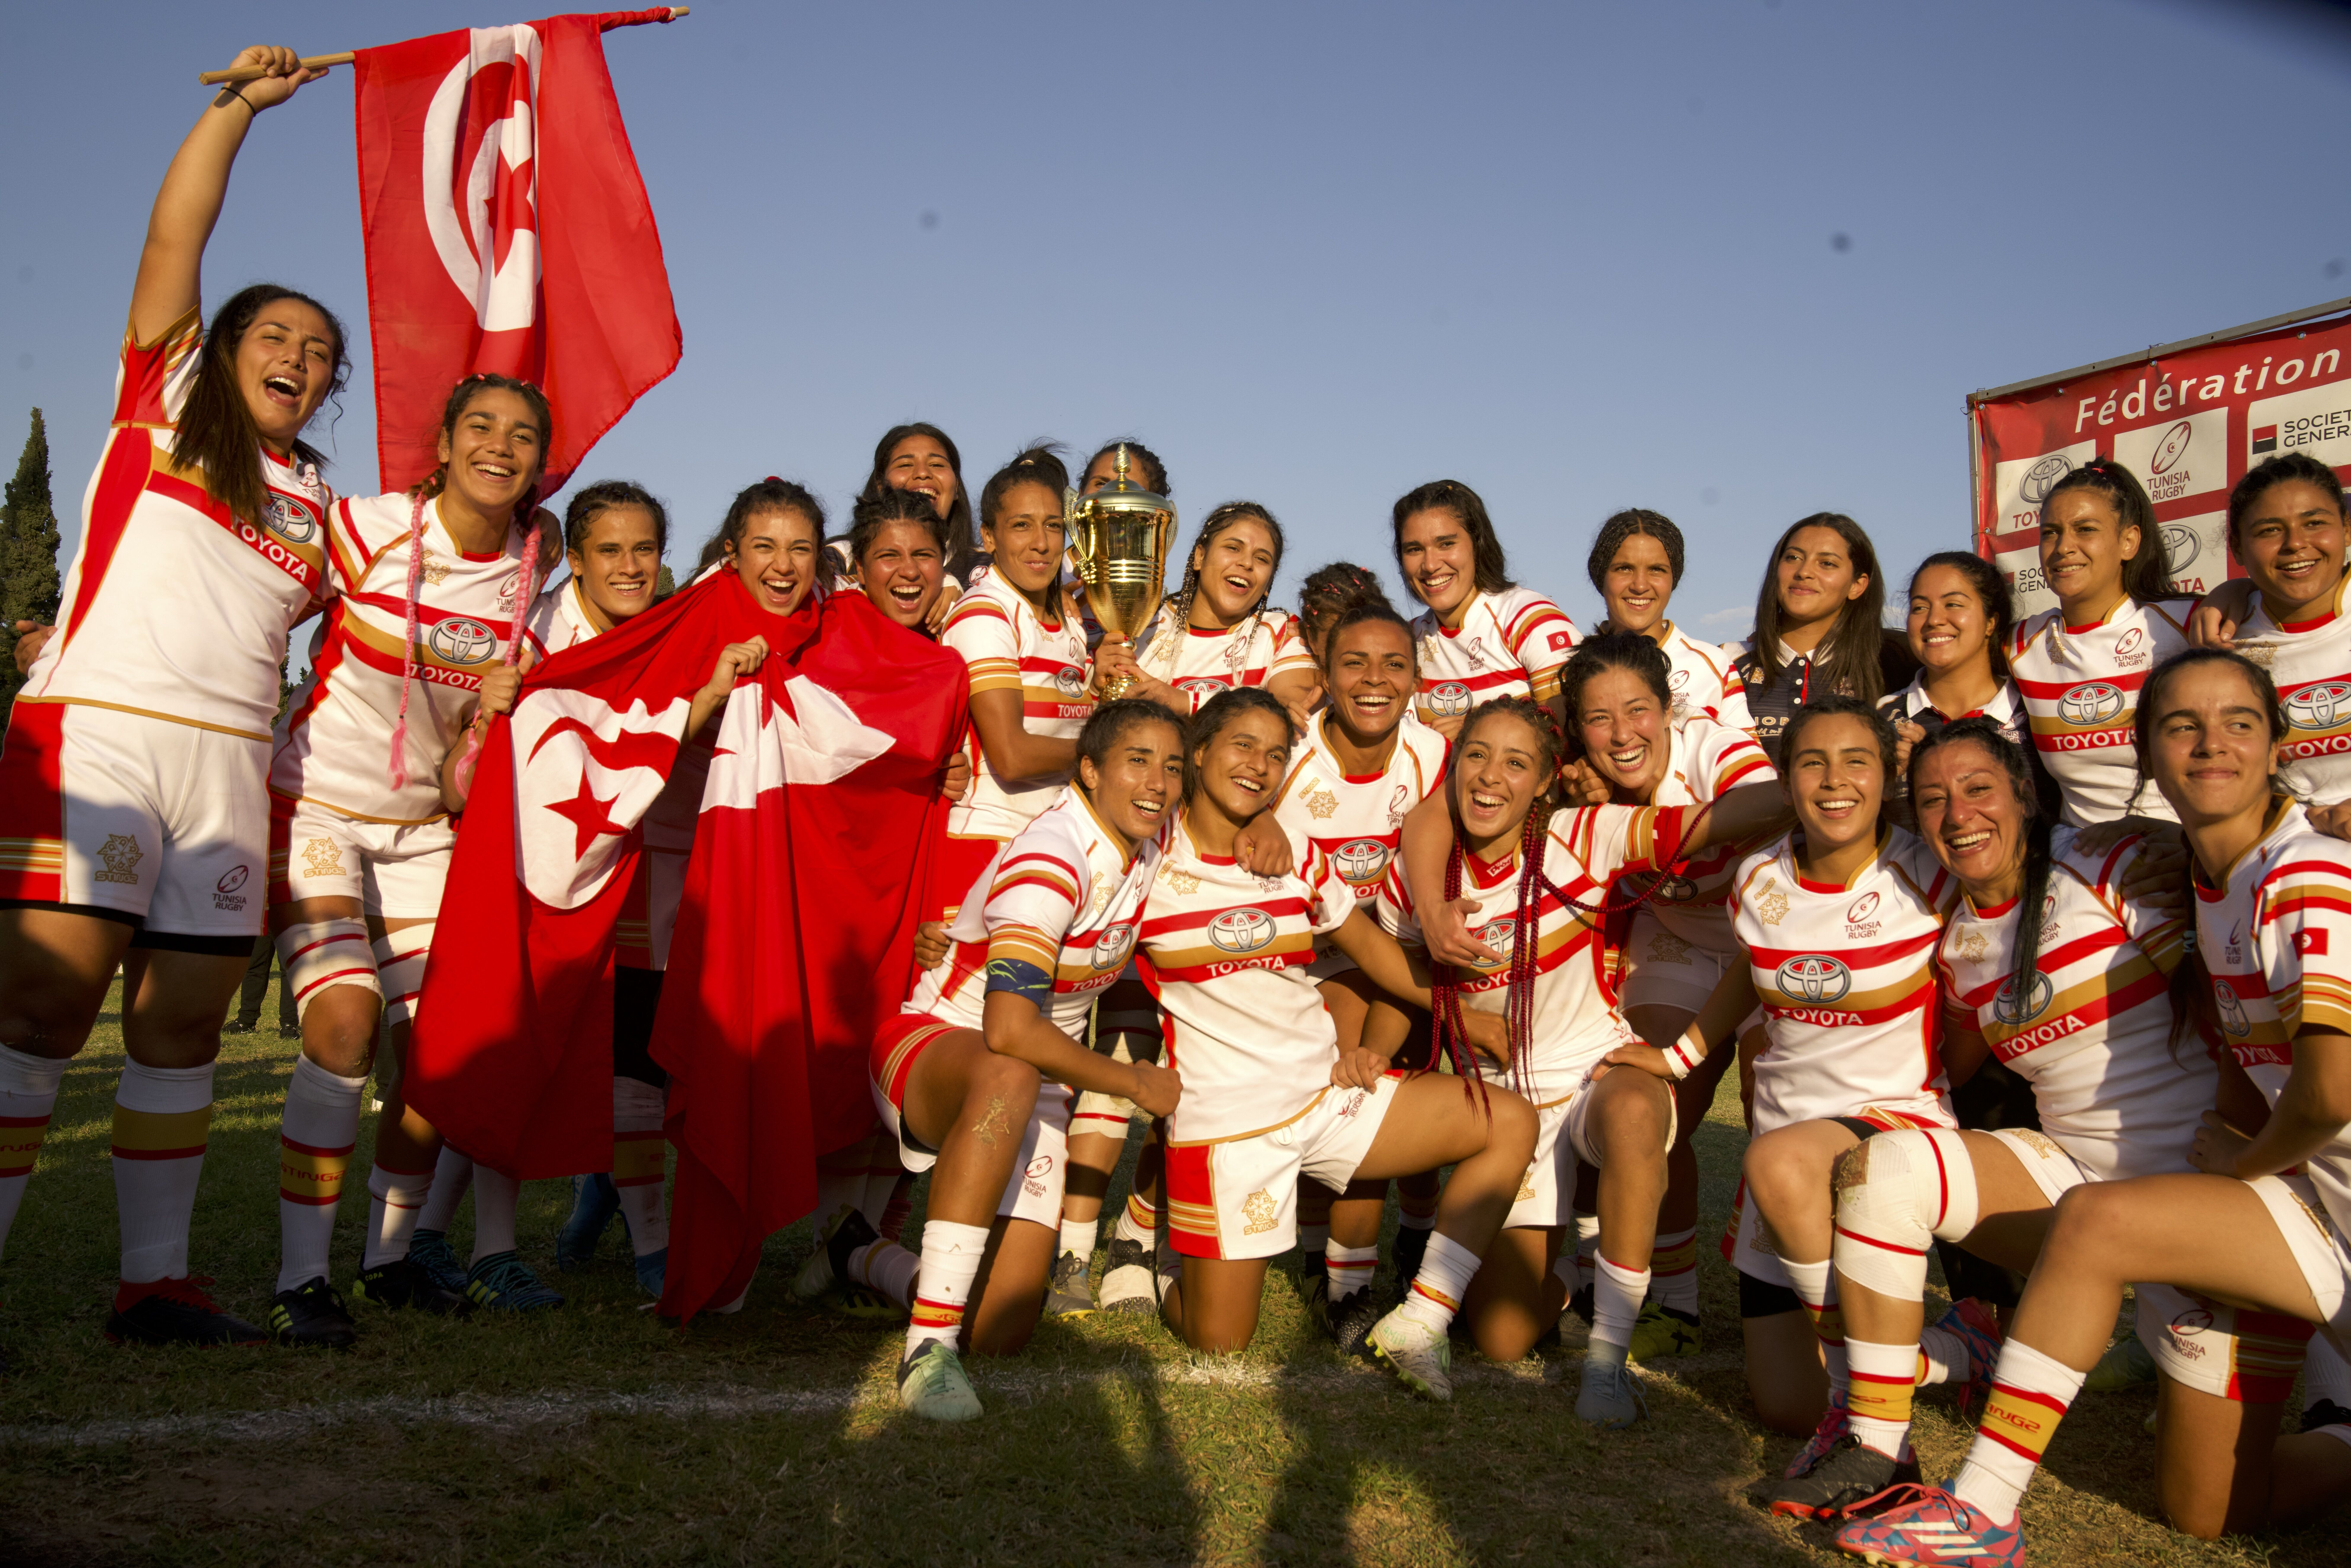 Tunisia whitewash Cote d'Ivoire 61-0 to claim Africa Cup Tournament